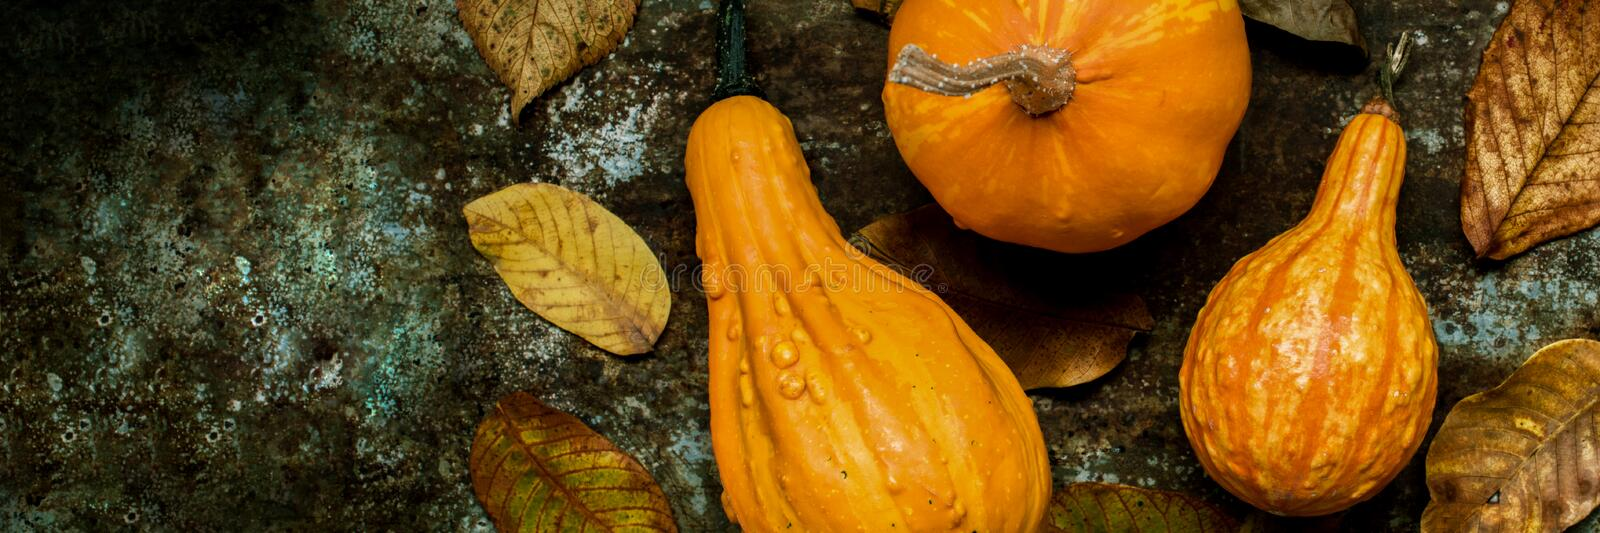 Happy Thanksgiving Banner. Selection of various pumpkins on dark metal background. Autumn Harvest and Holiday still life. Autumn vegetables stock photos